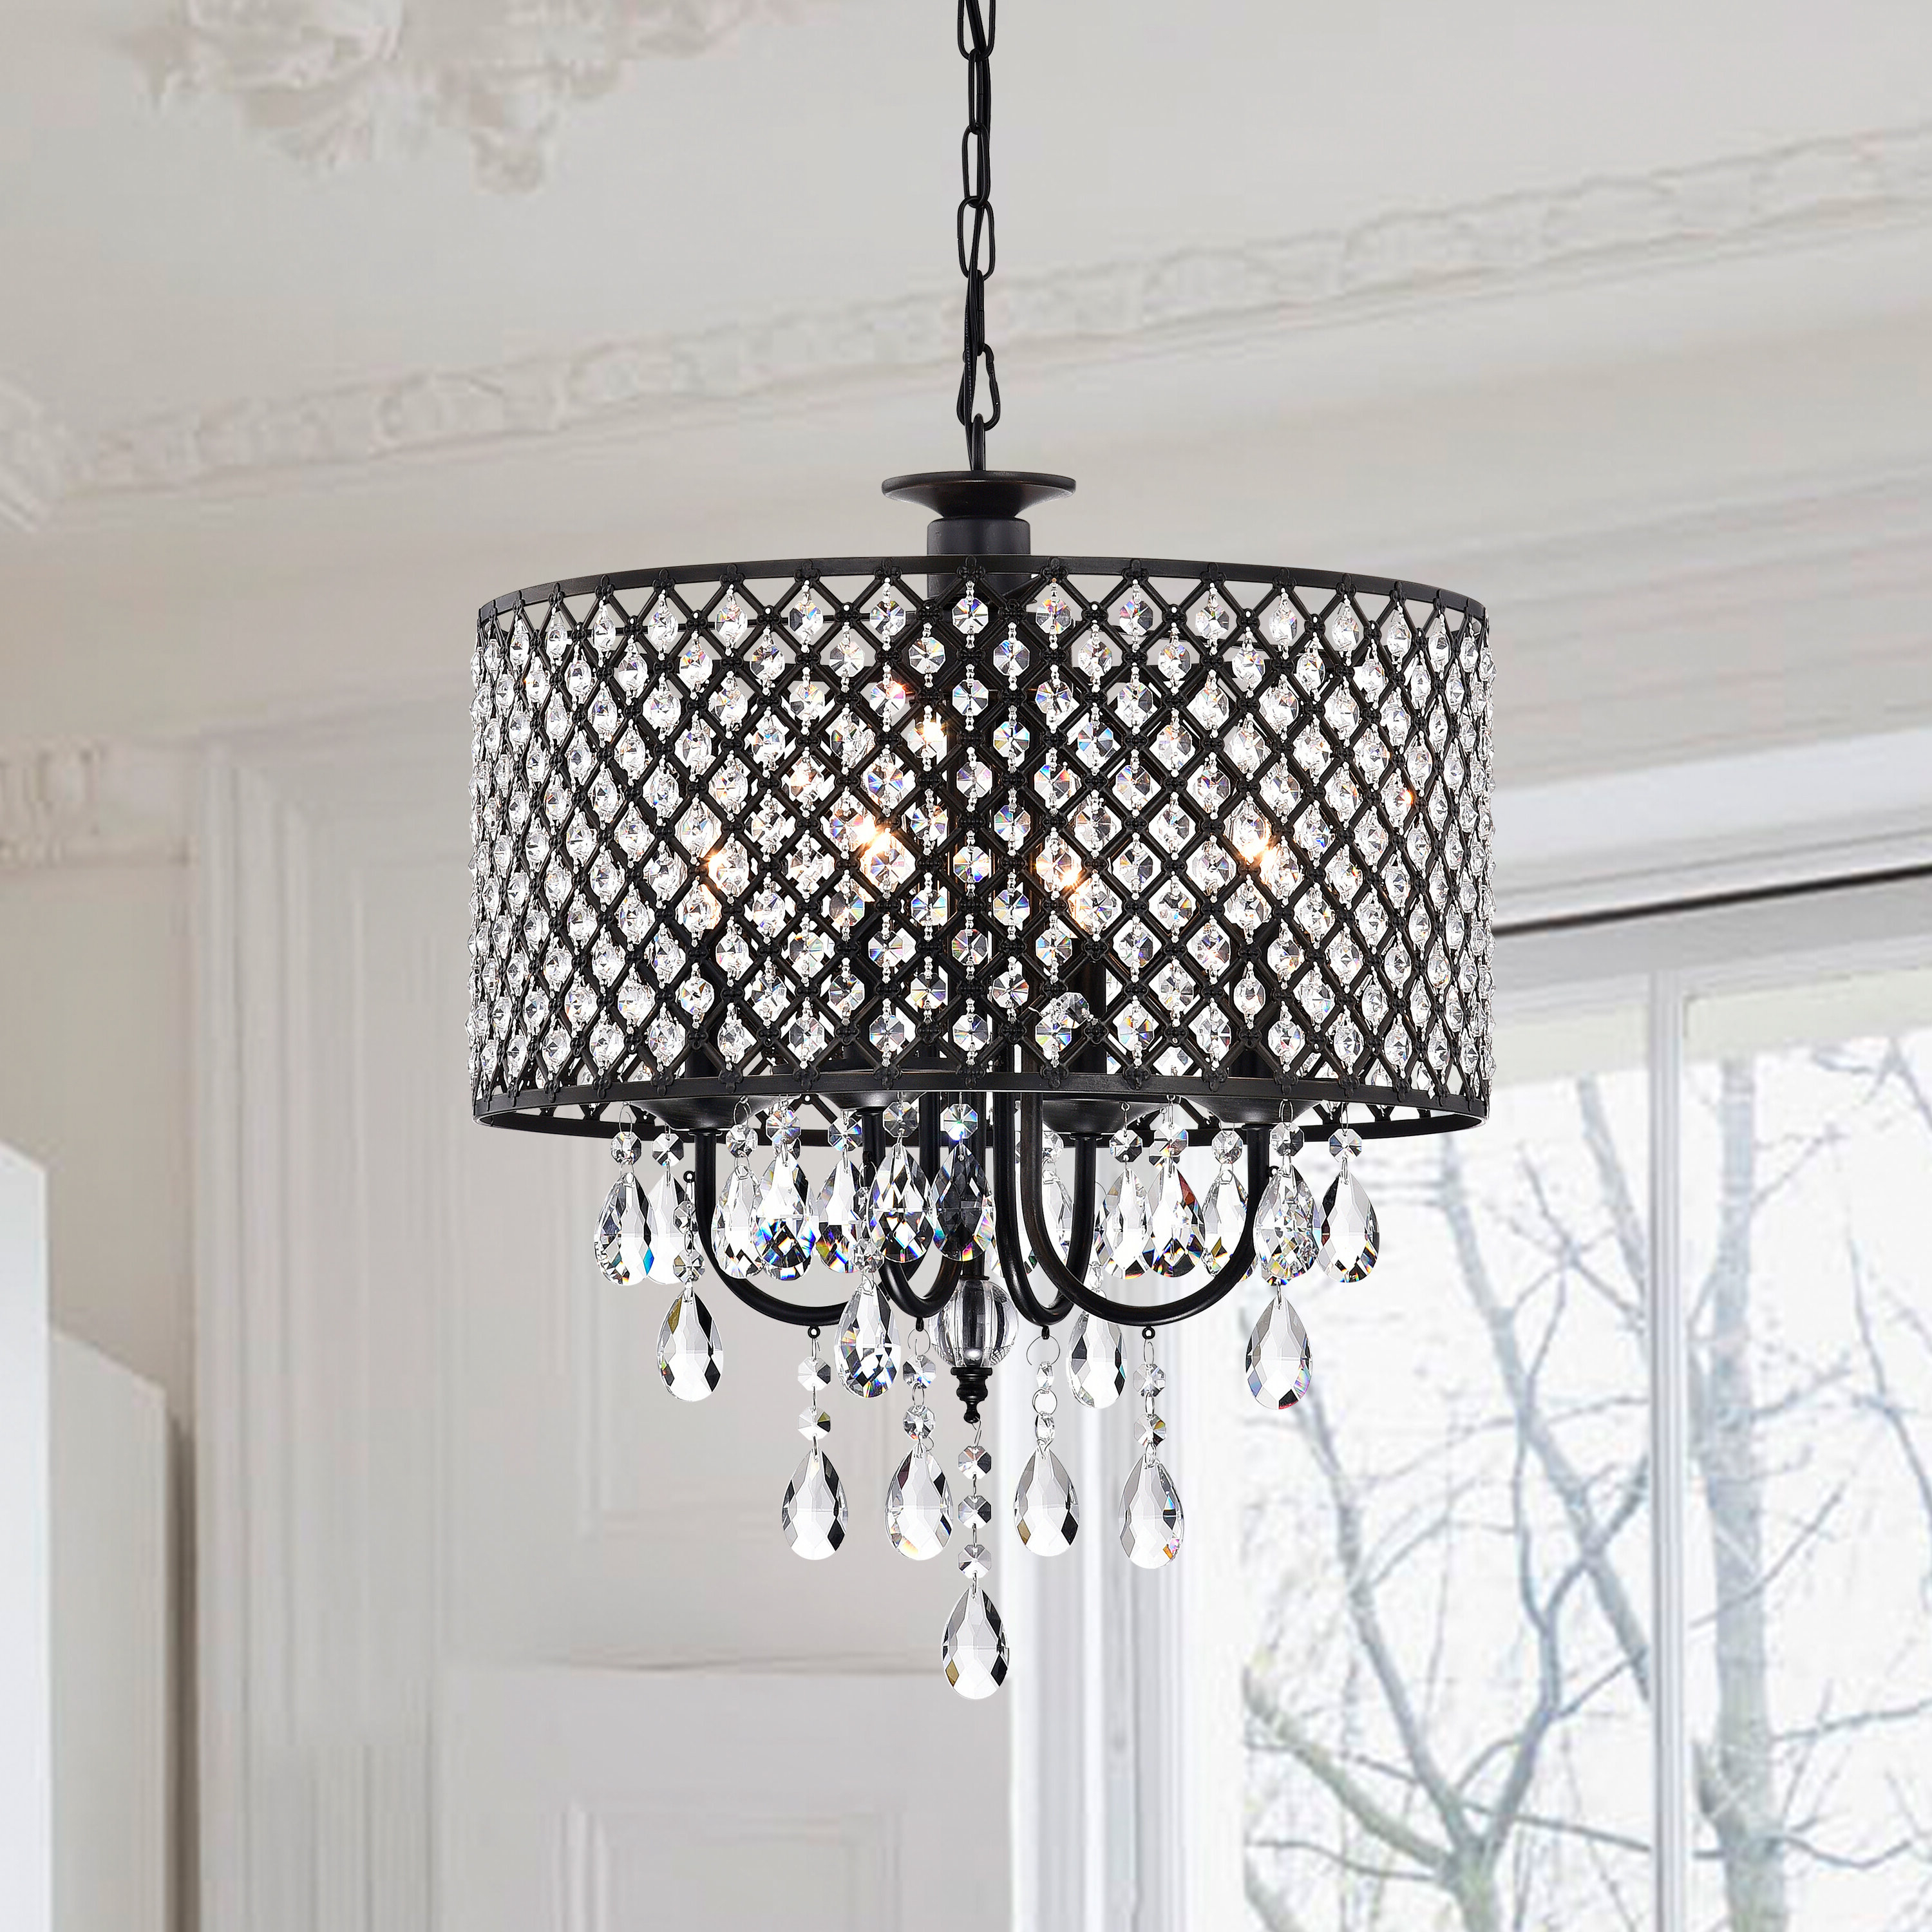 Gisselle 4 Light Drum Chandeliers Pertaining To Most Recently Released Gisselle 4 Light Drum Chandelier (Gallery 1 of 20)